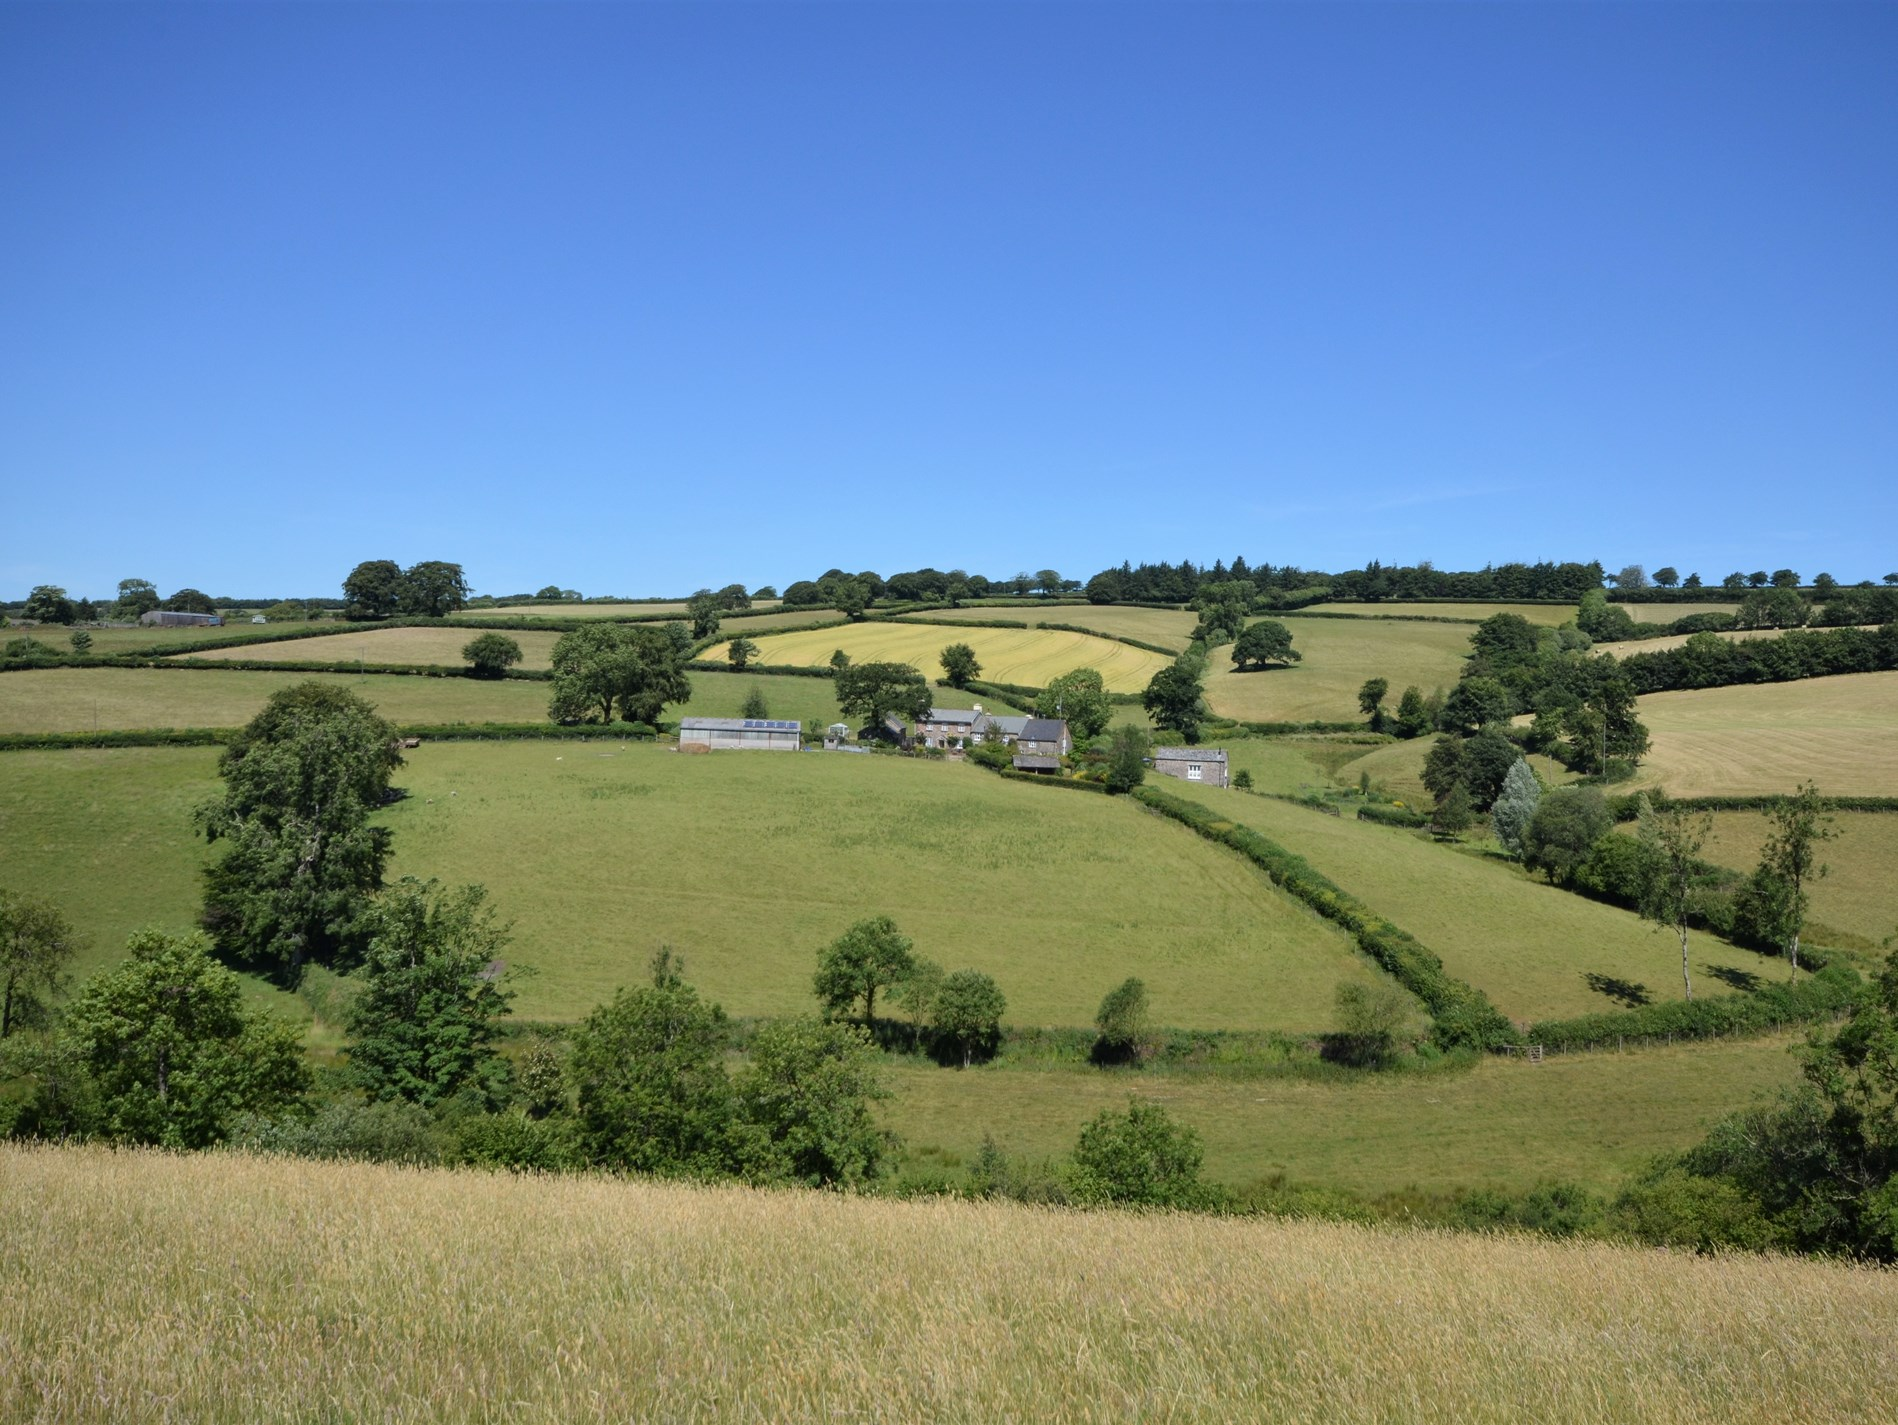 Stay in the wonderful barn conversion surrounded by countryside